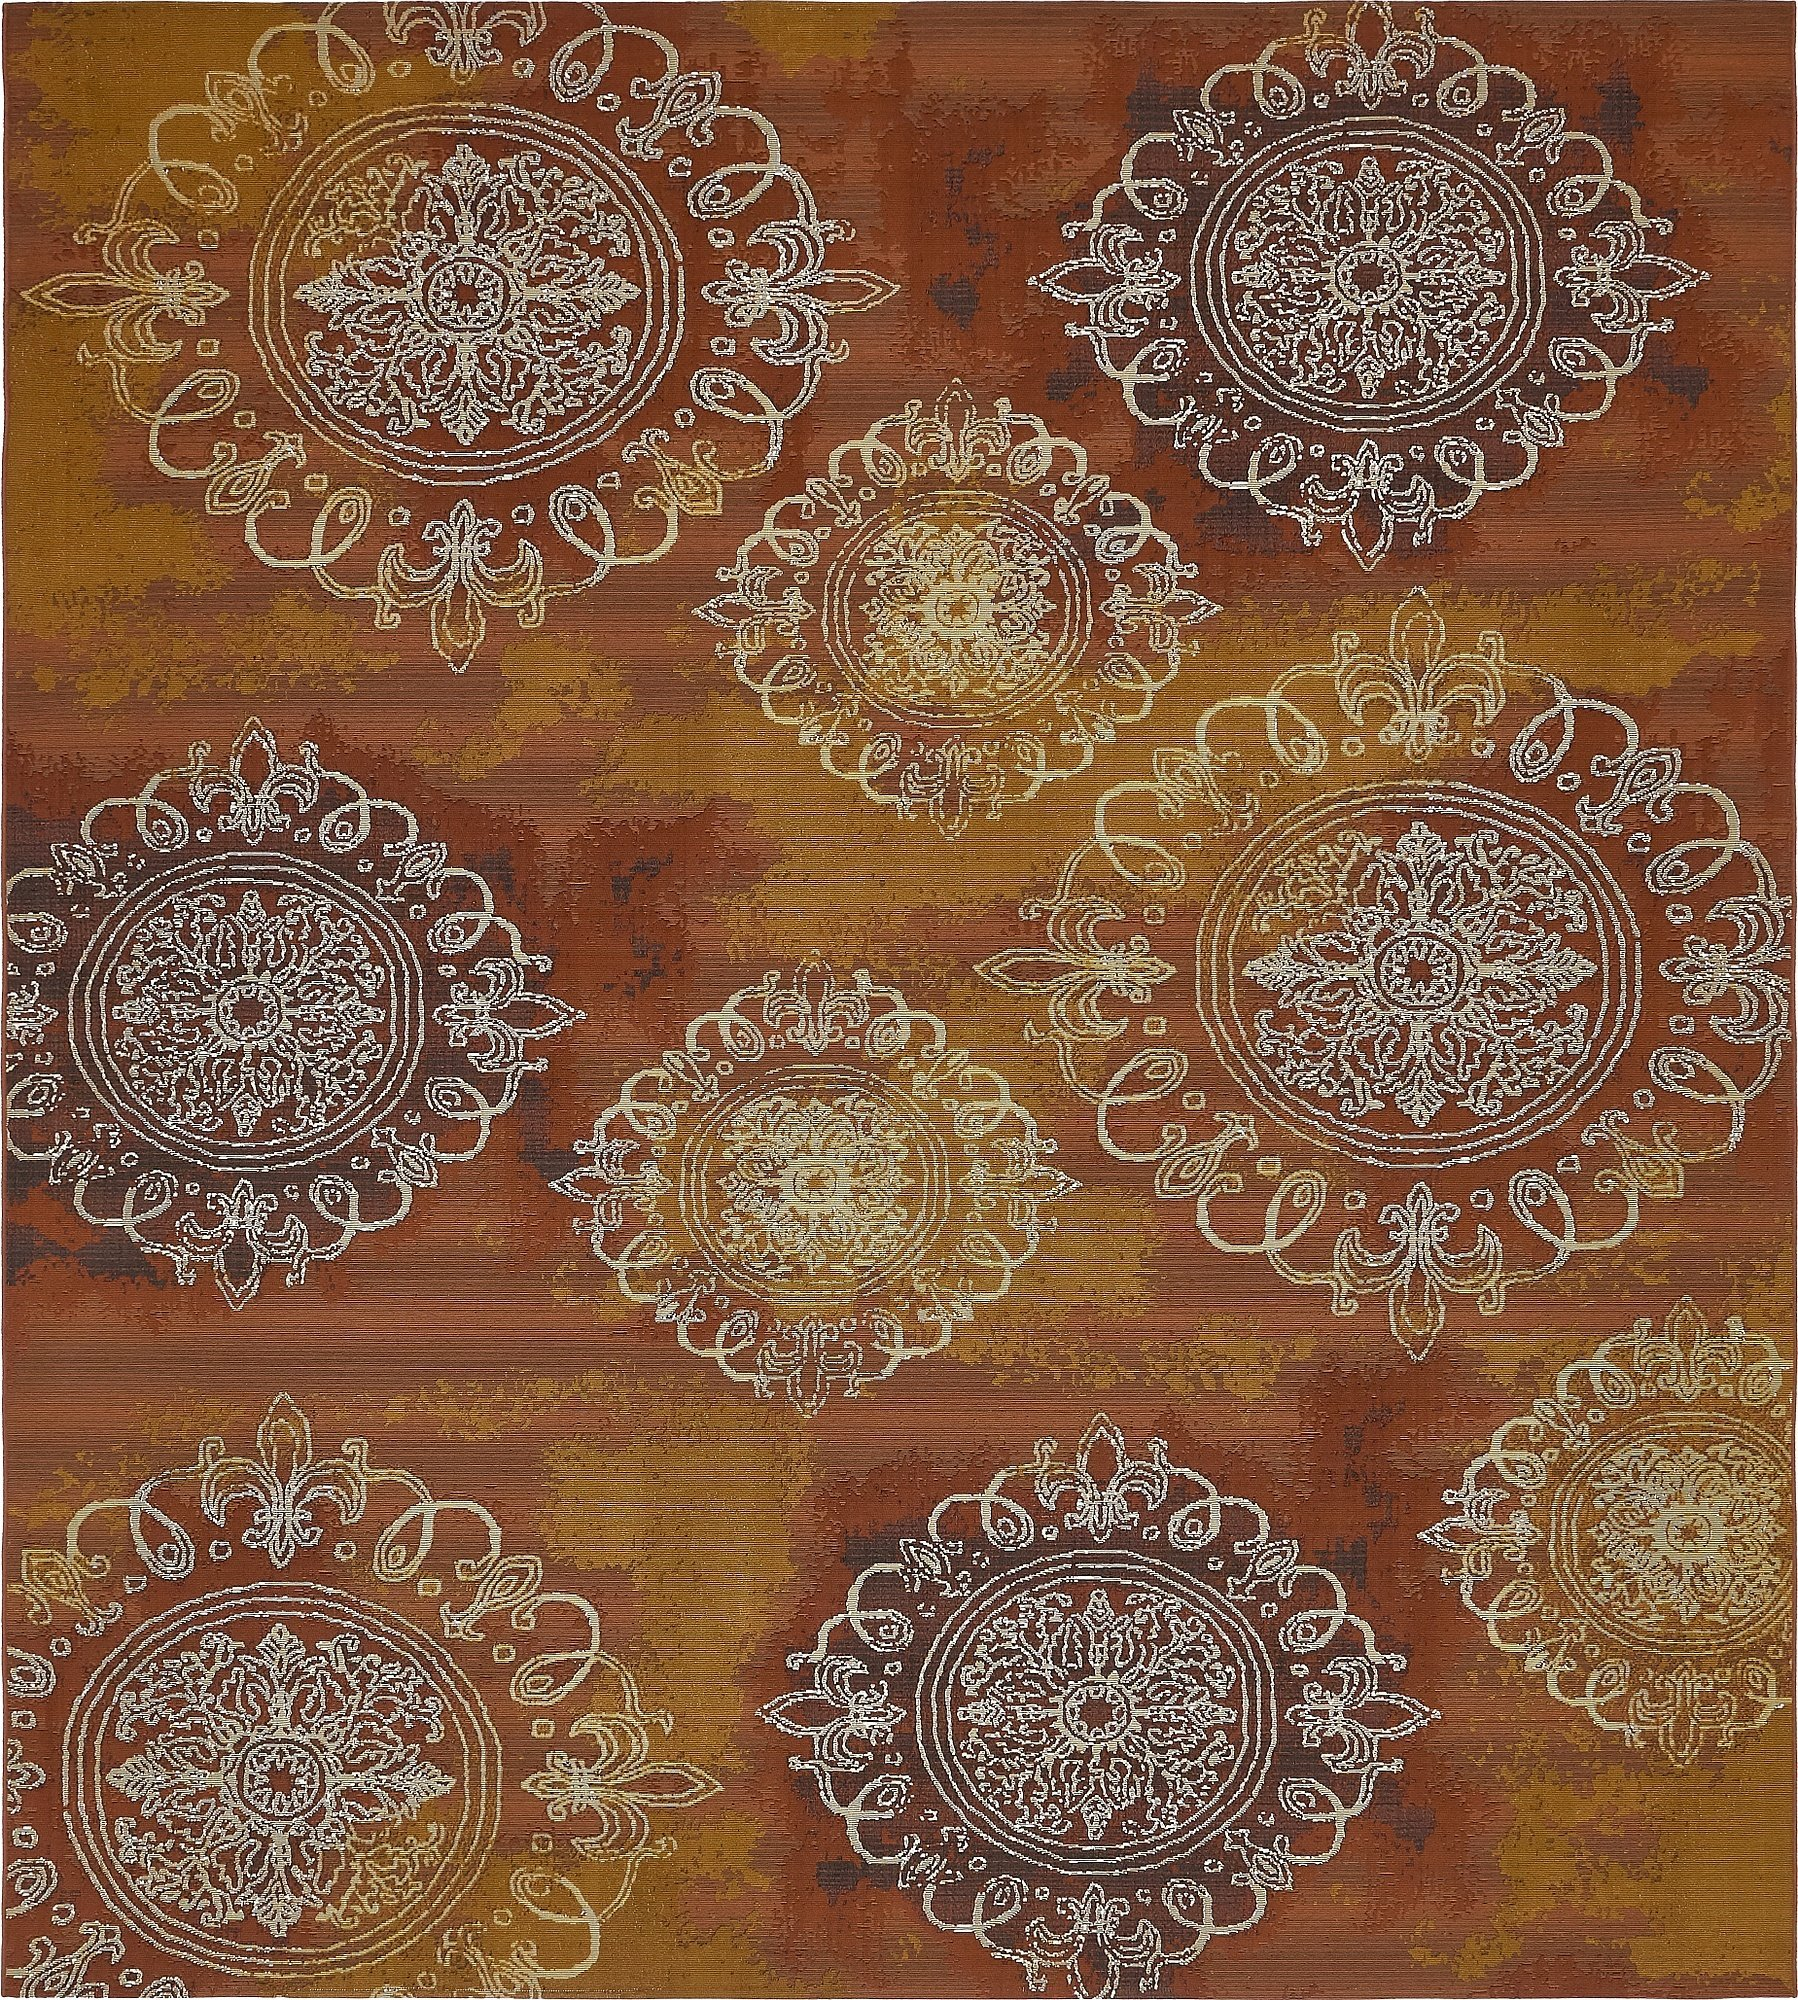 Unique Loom Eden Outdoor Collection Rust Red 10 x 12 Area Rug (10' x 12')